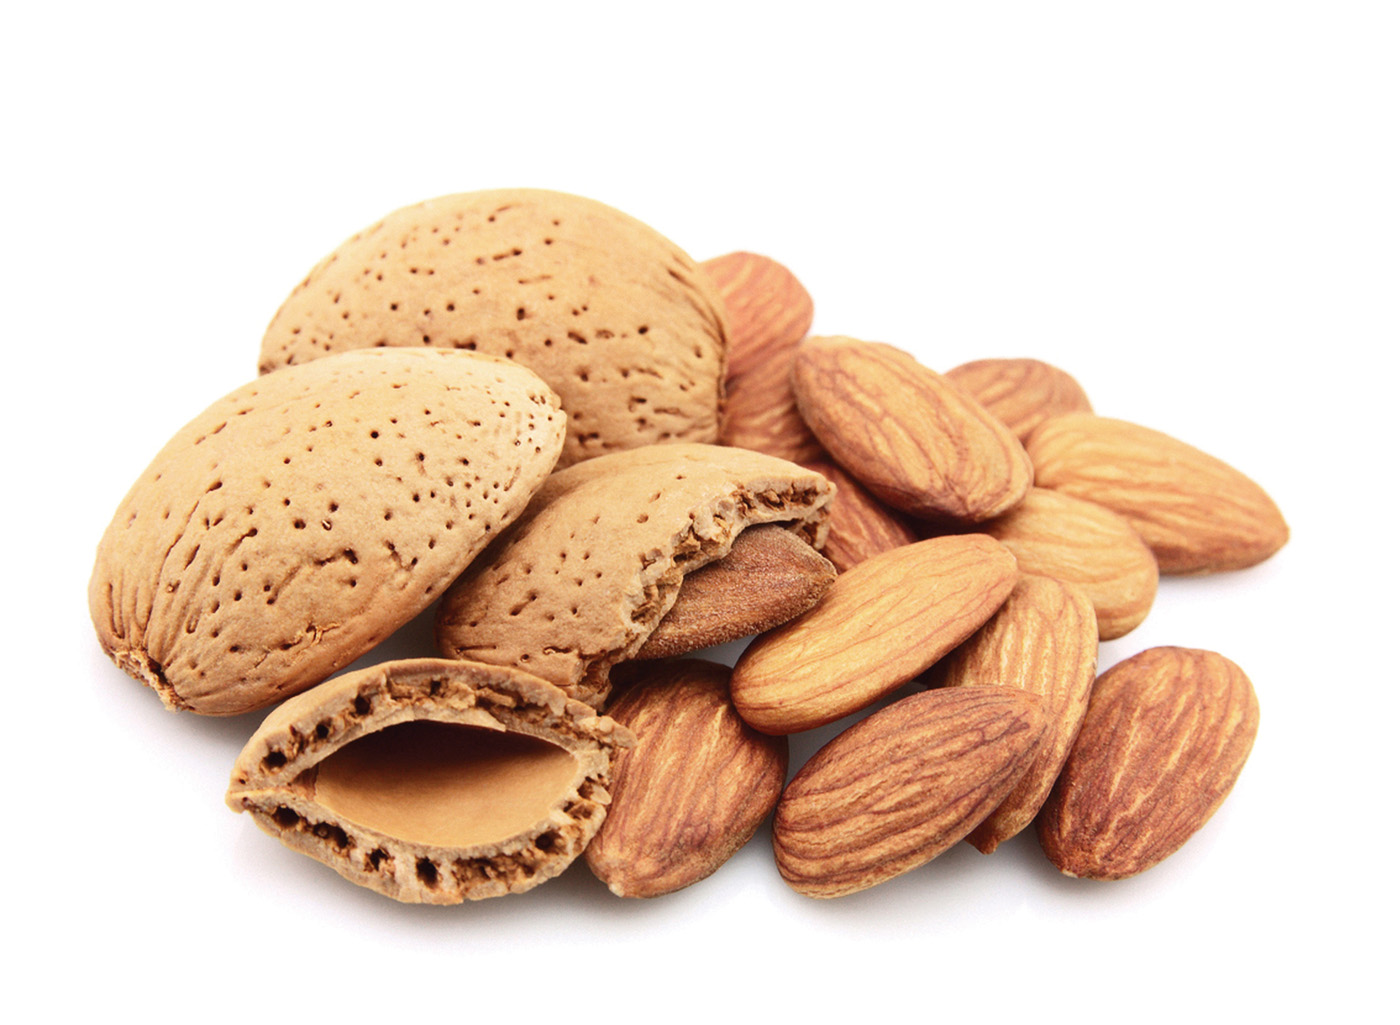 Entirely from heart: Almonds: A Wonderful nut to get ... Almonds